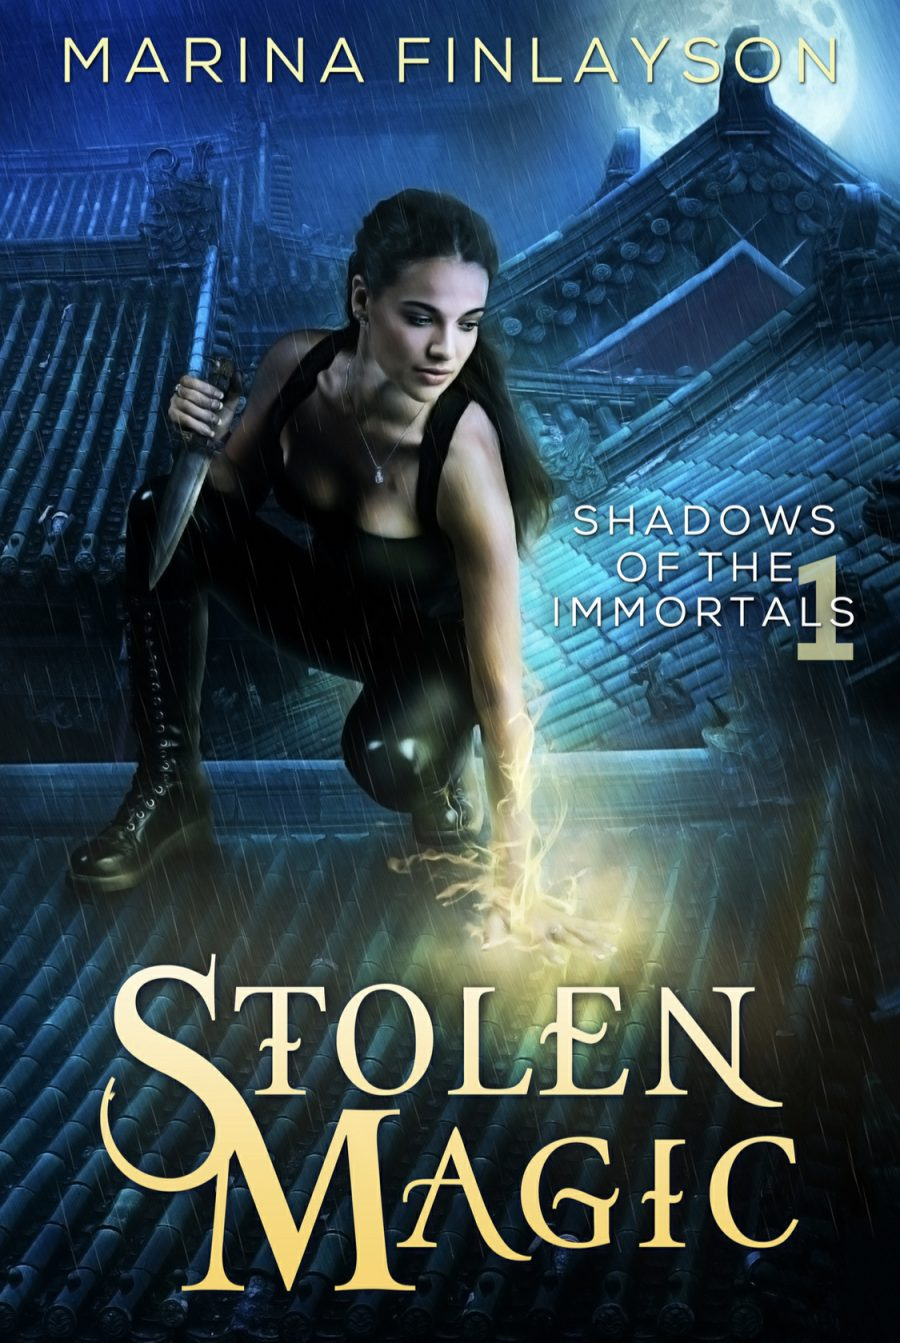 Stolen Magic by Marina Finlayson - A Book Review #UrbanFantasy #FastPaced #CompleteSeries #OldRelease #4Stars #KindleUnlimited #KU